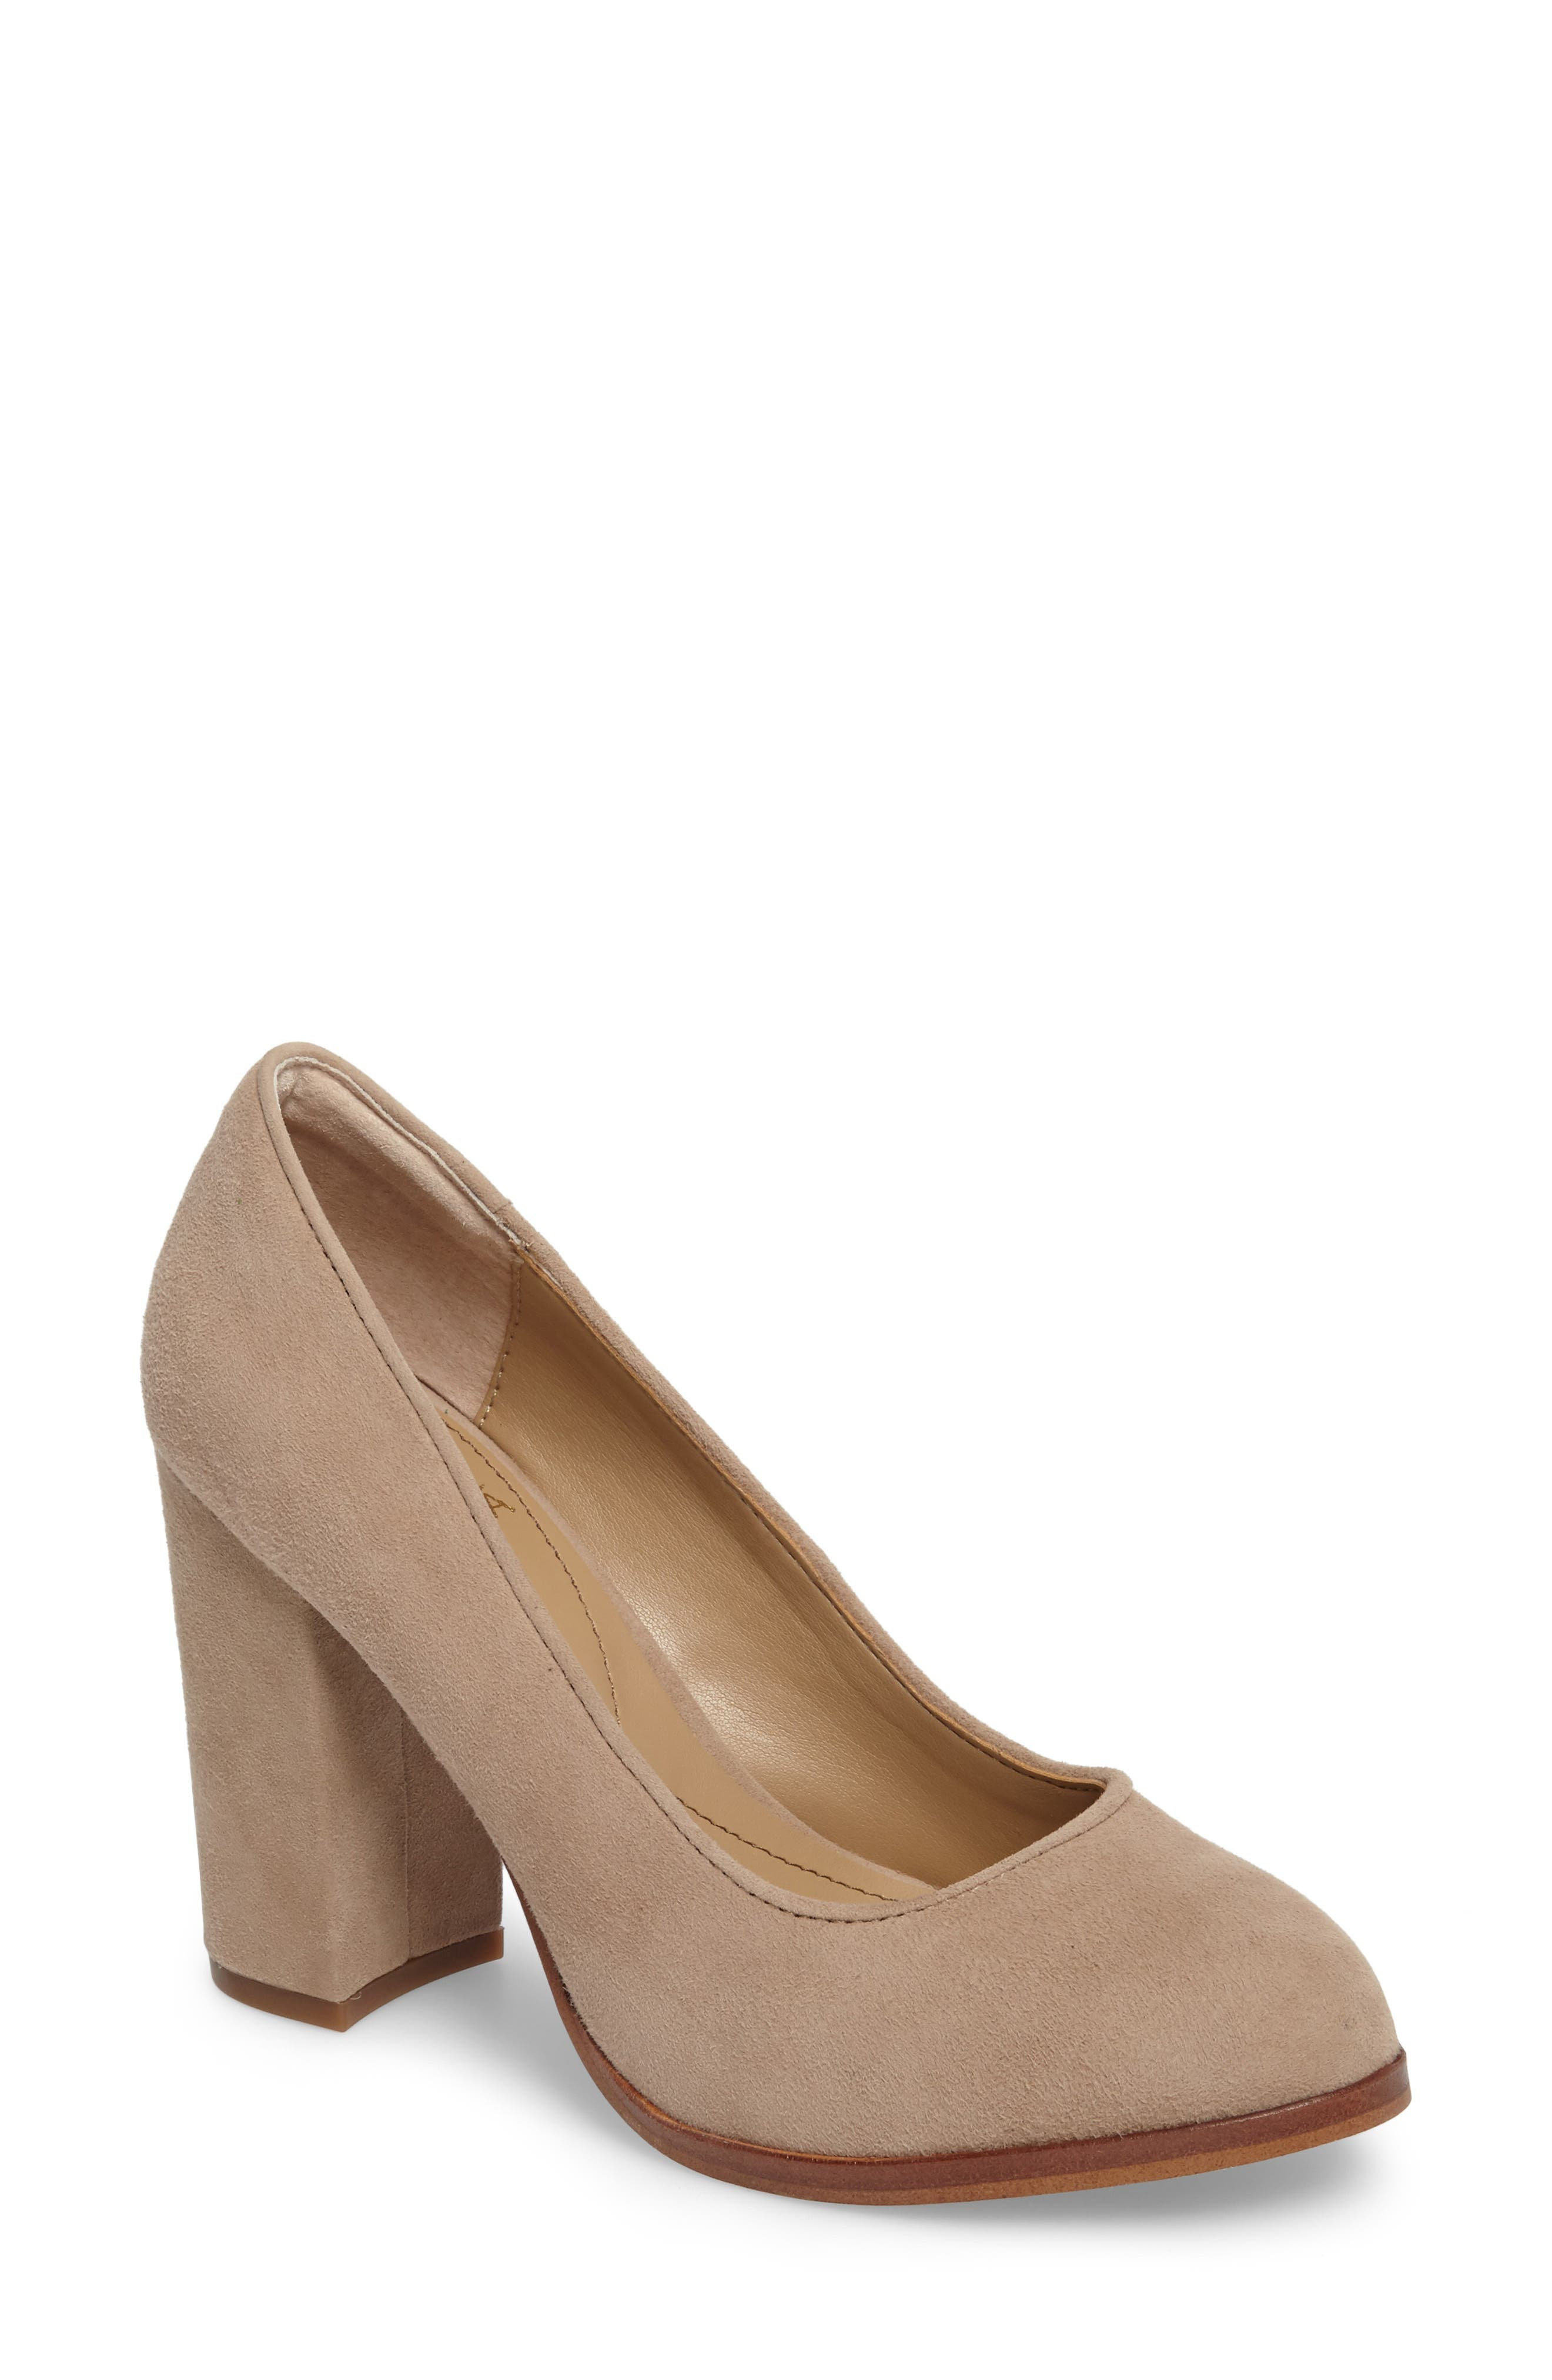 Hayley Pump,                             Main thumbnail 1, color,                             BAYWATER SUEDE